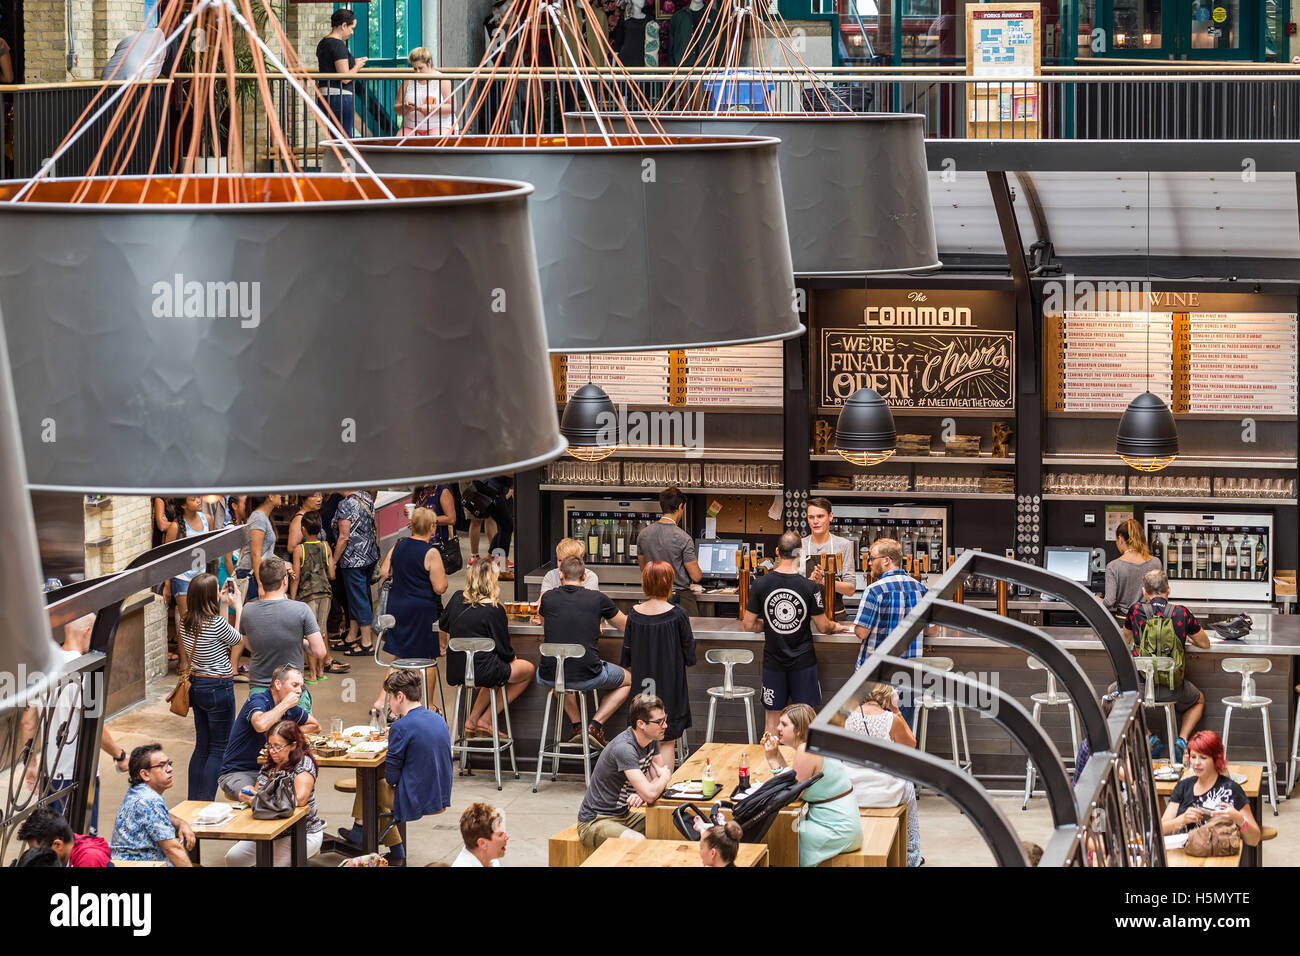 The Forks Market, Winnipeg, Manitoba, Canada. - Stock Image